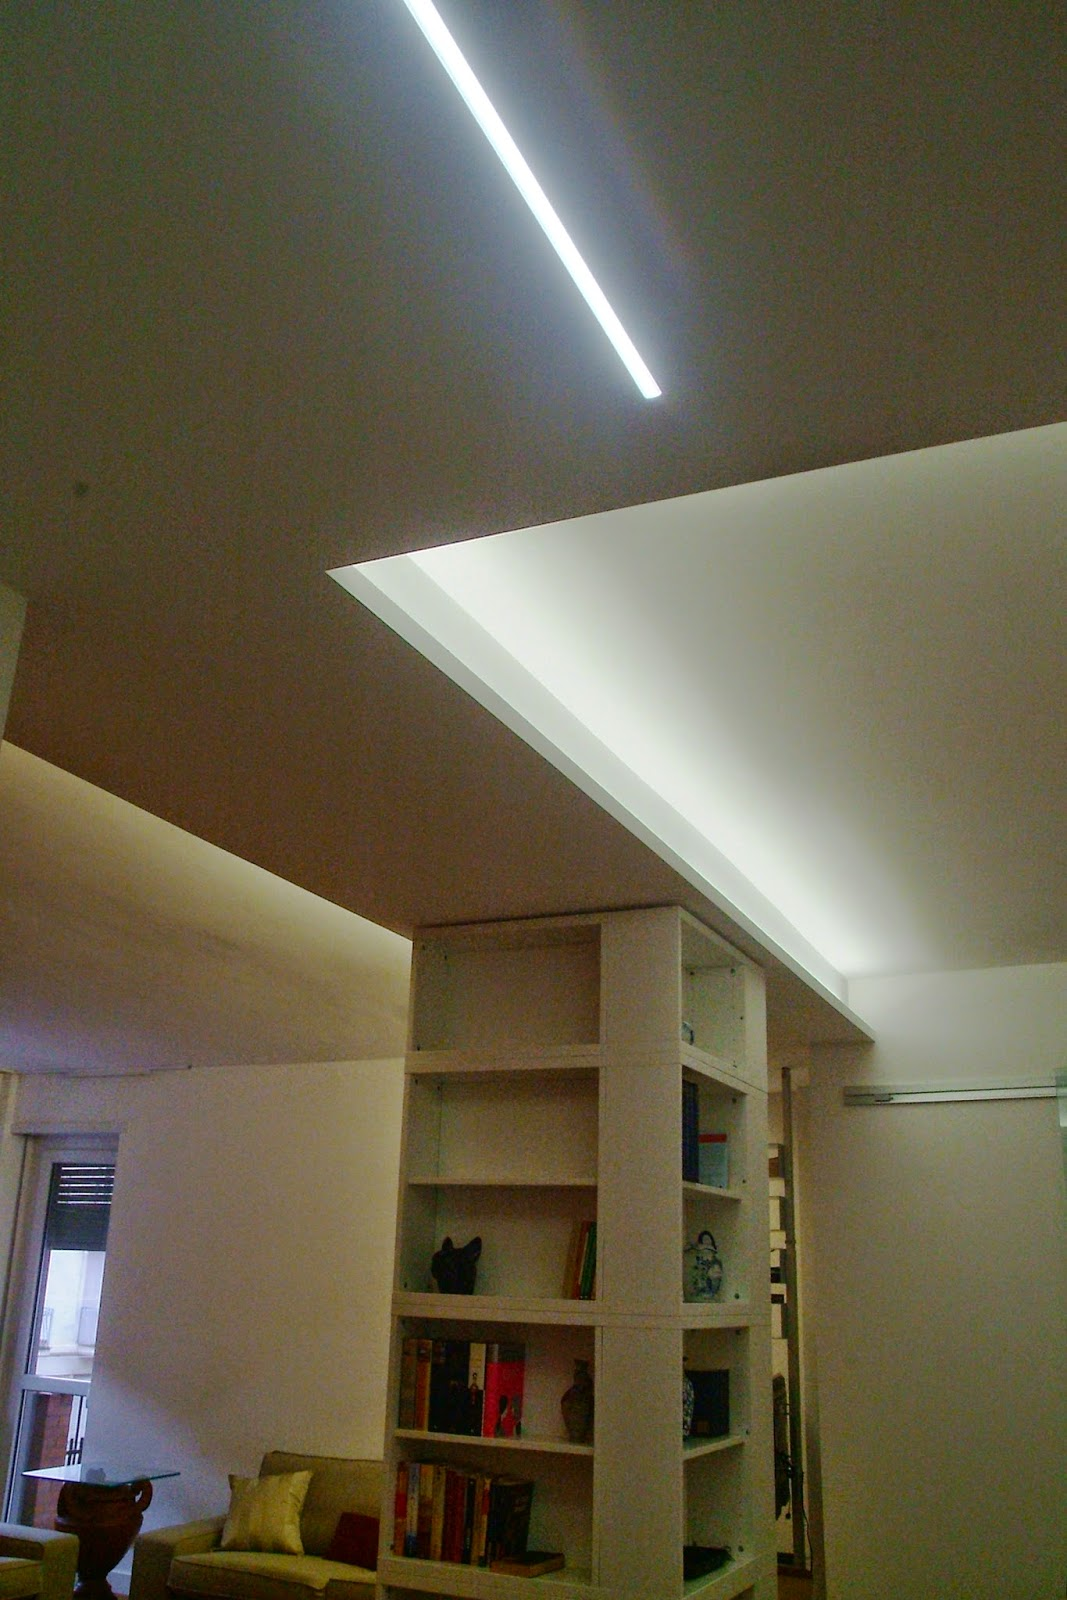 Illuminazione led casa novembre 2014 for Illuminazione a led